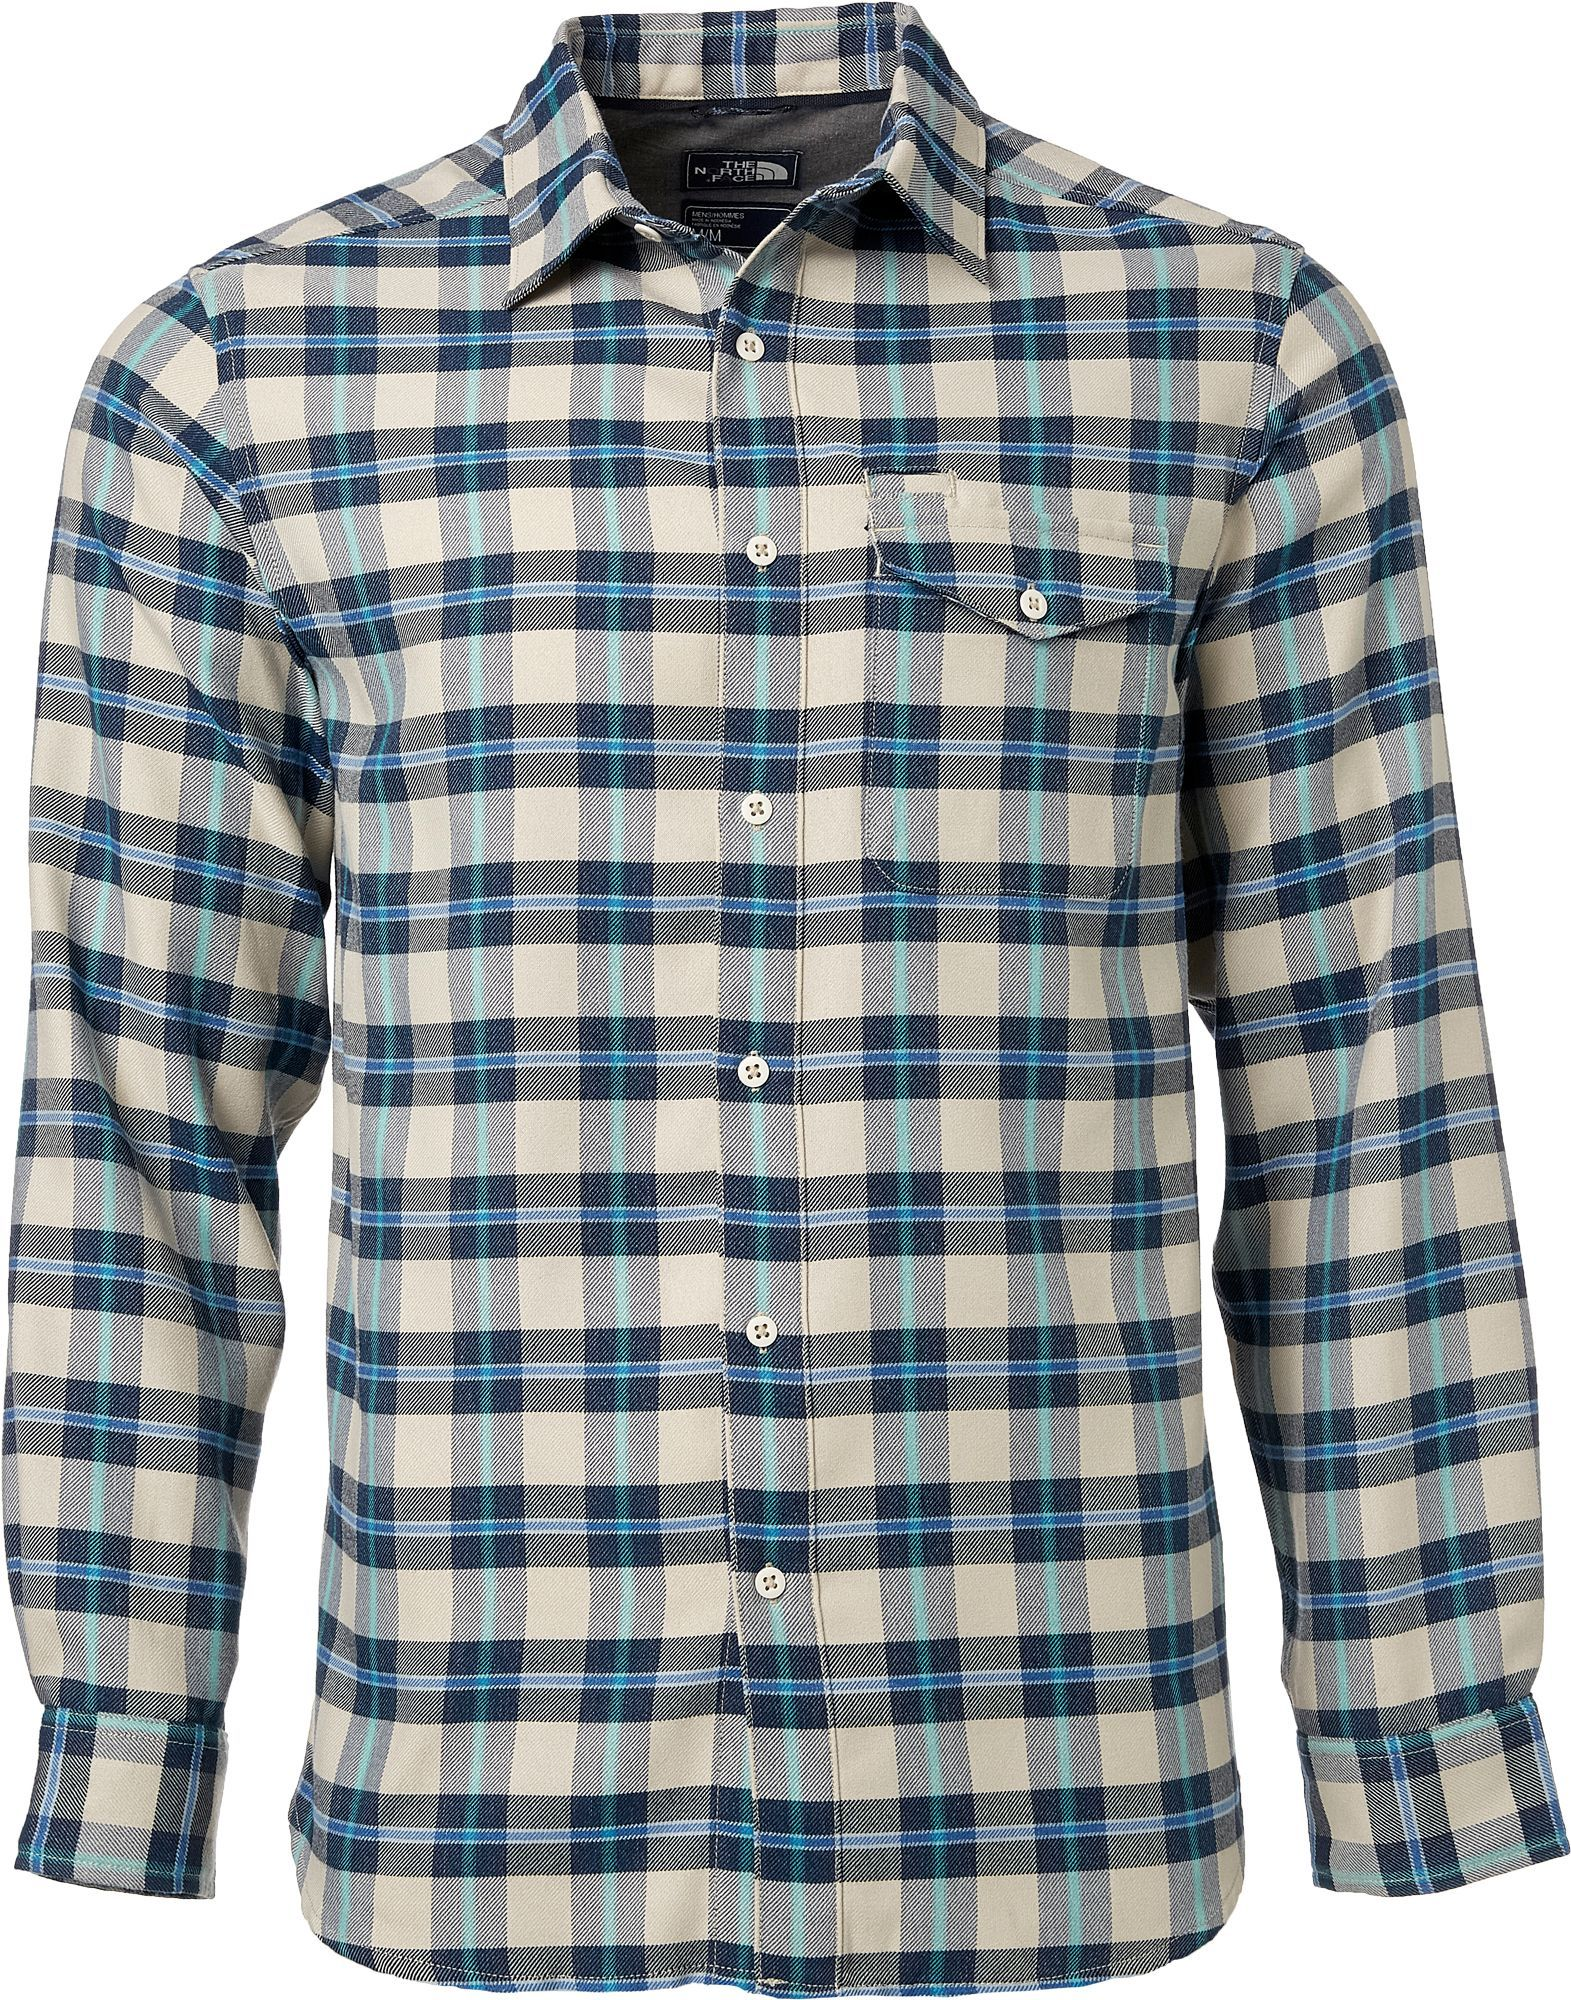 56953d54f The North Face Men's ThermoCore Long Sleeve Shirt | Products | Long ...